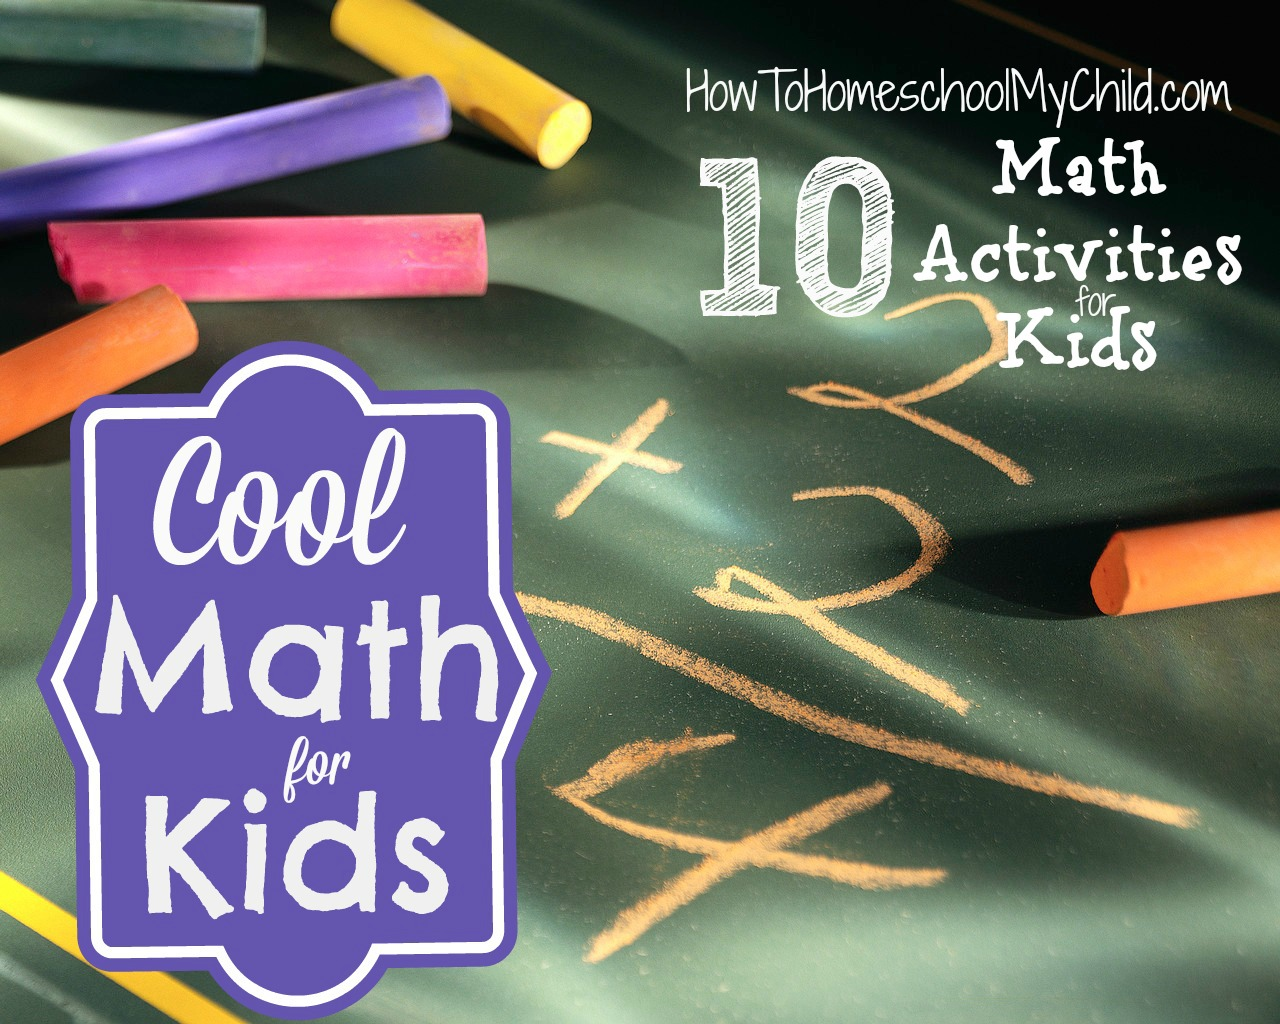 Cool Math for Kids {Weekend Links} - How To Homeschool My Child